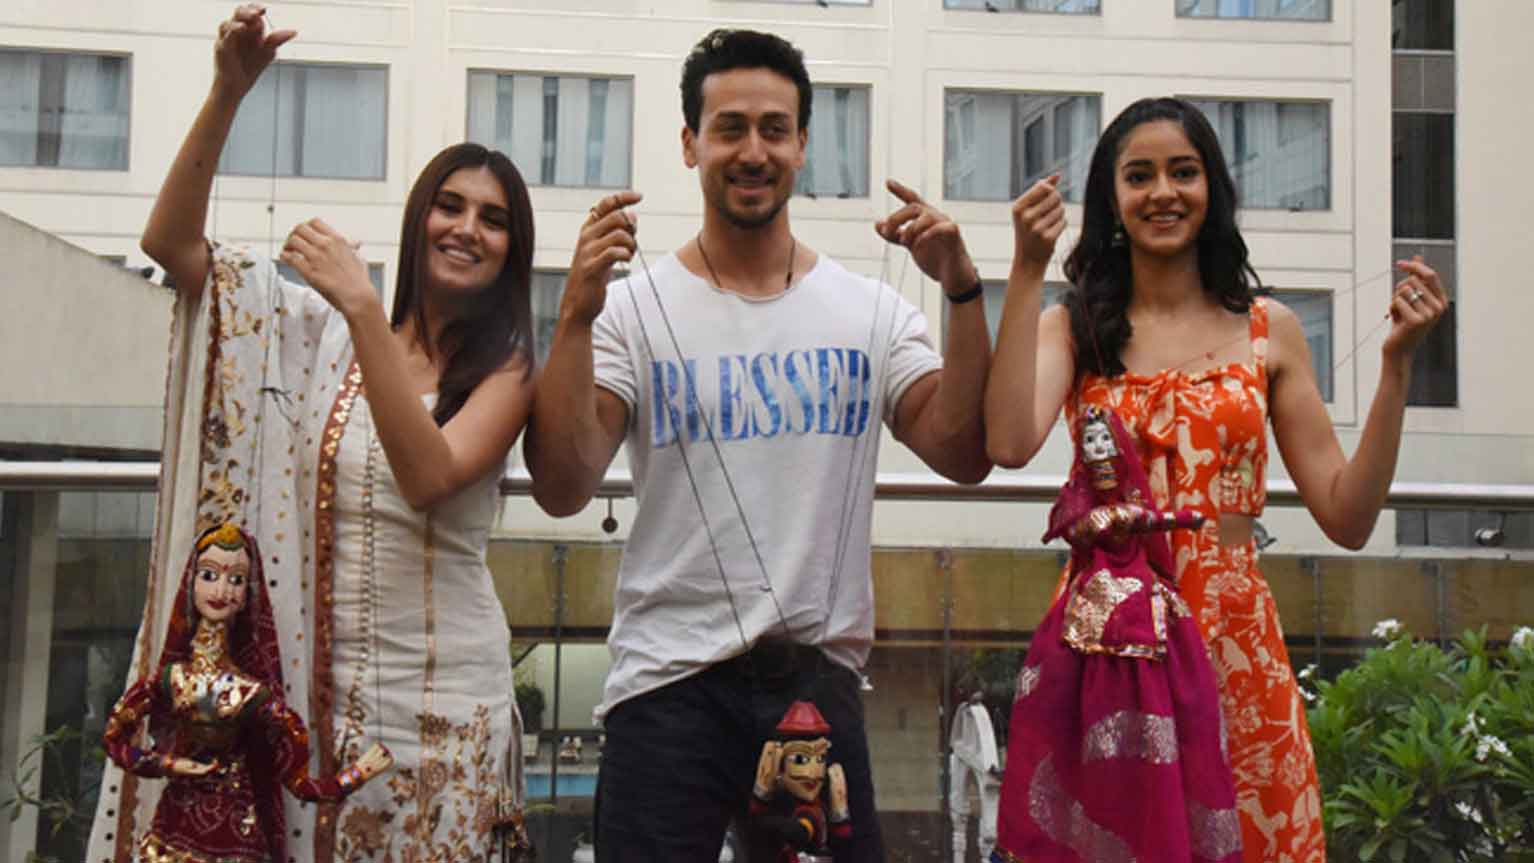 Student of the Year 2' stars Tiger Shroff and Ananya Panday